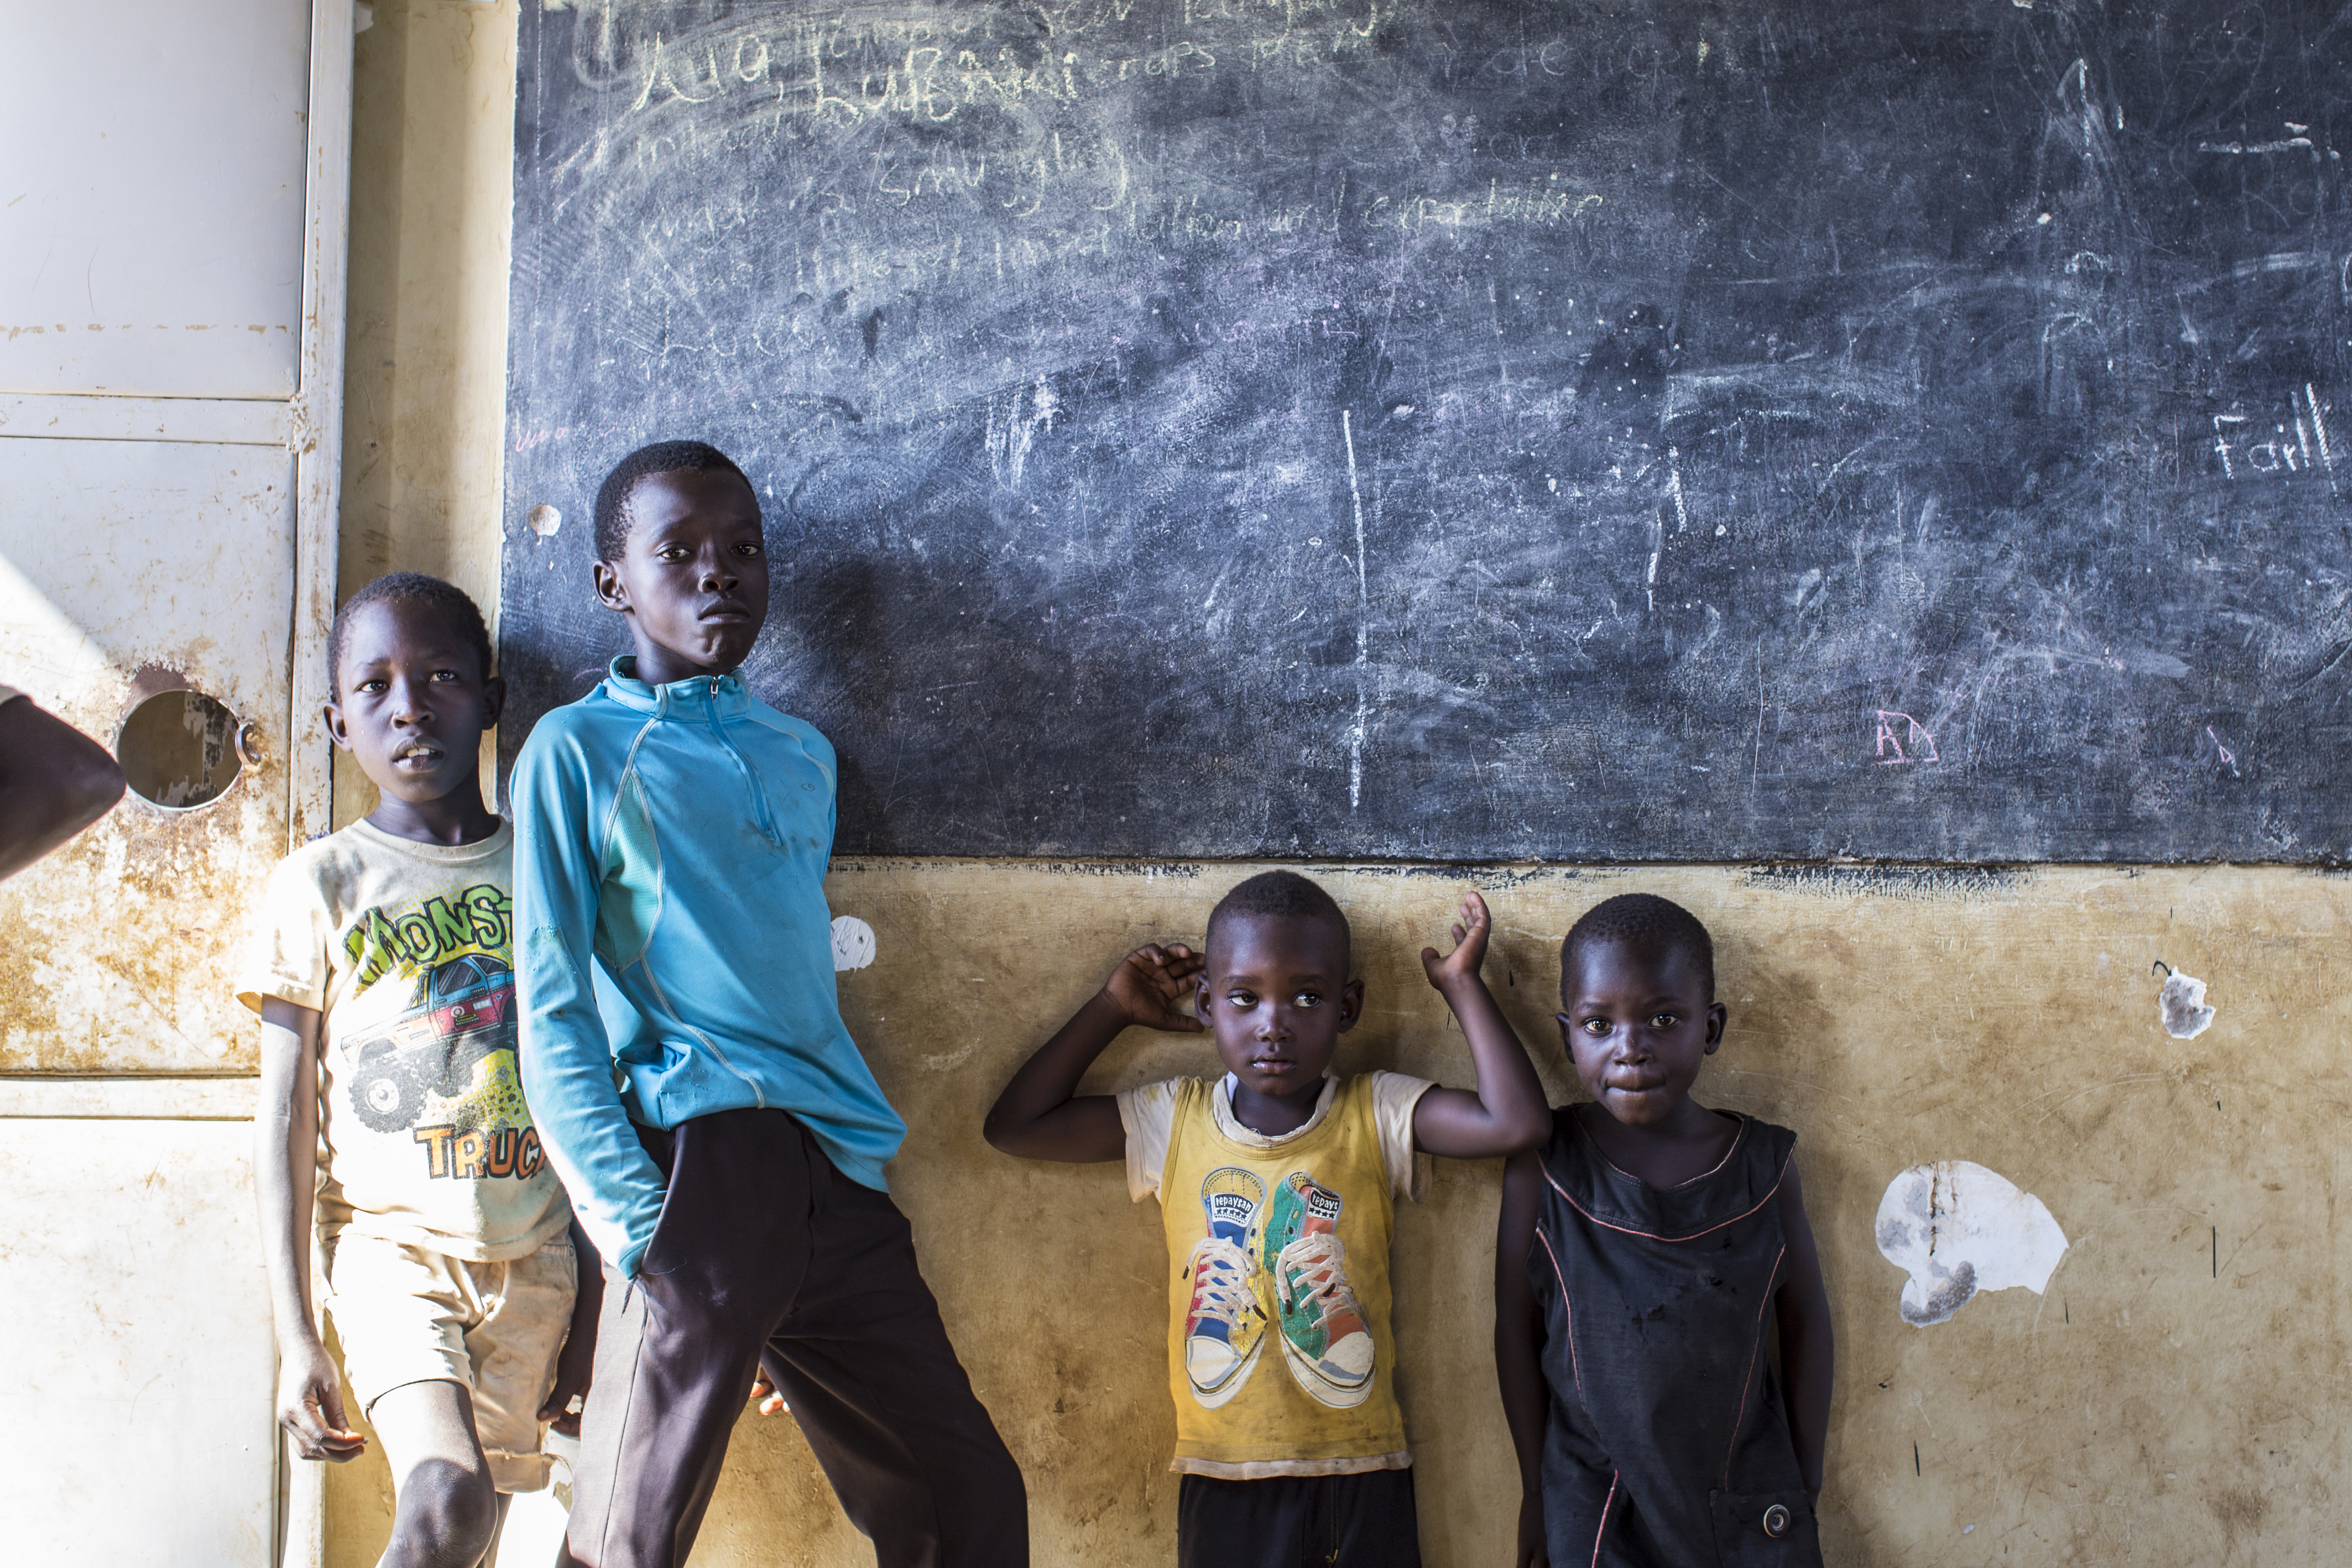 2.GPE partner developing countries are home to almost 4 million refugee children, about 45% of the world's refugee children population.